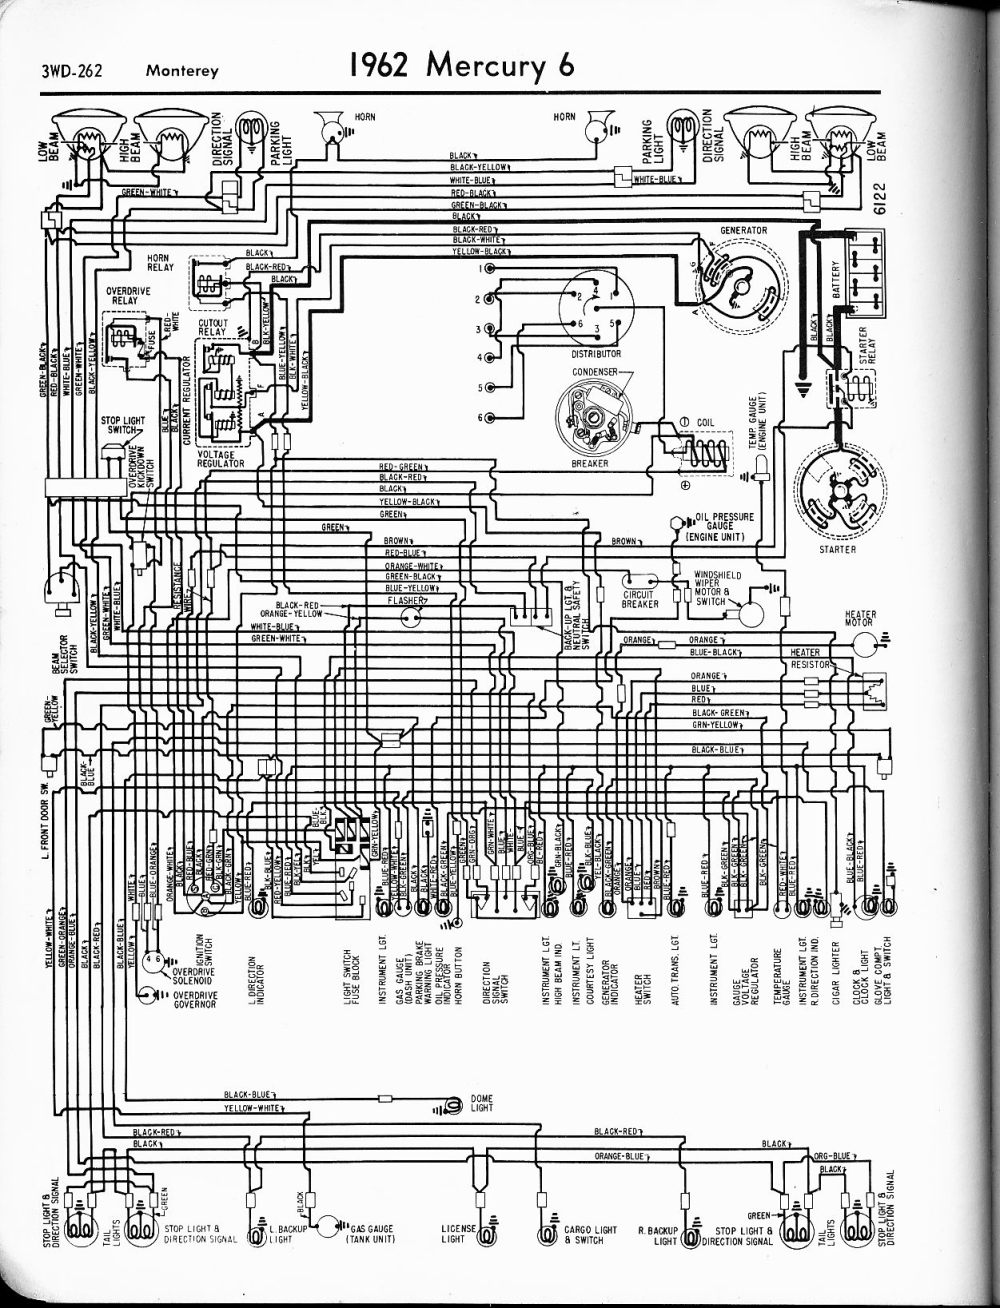 medium resolution of 1968 ford thunderbird general fuse box diagram wiring diagram online 5r110 solenoid diagram 1962 ford fuse